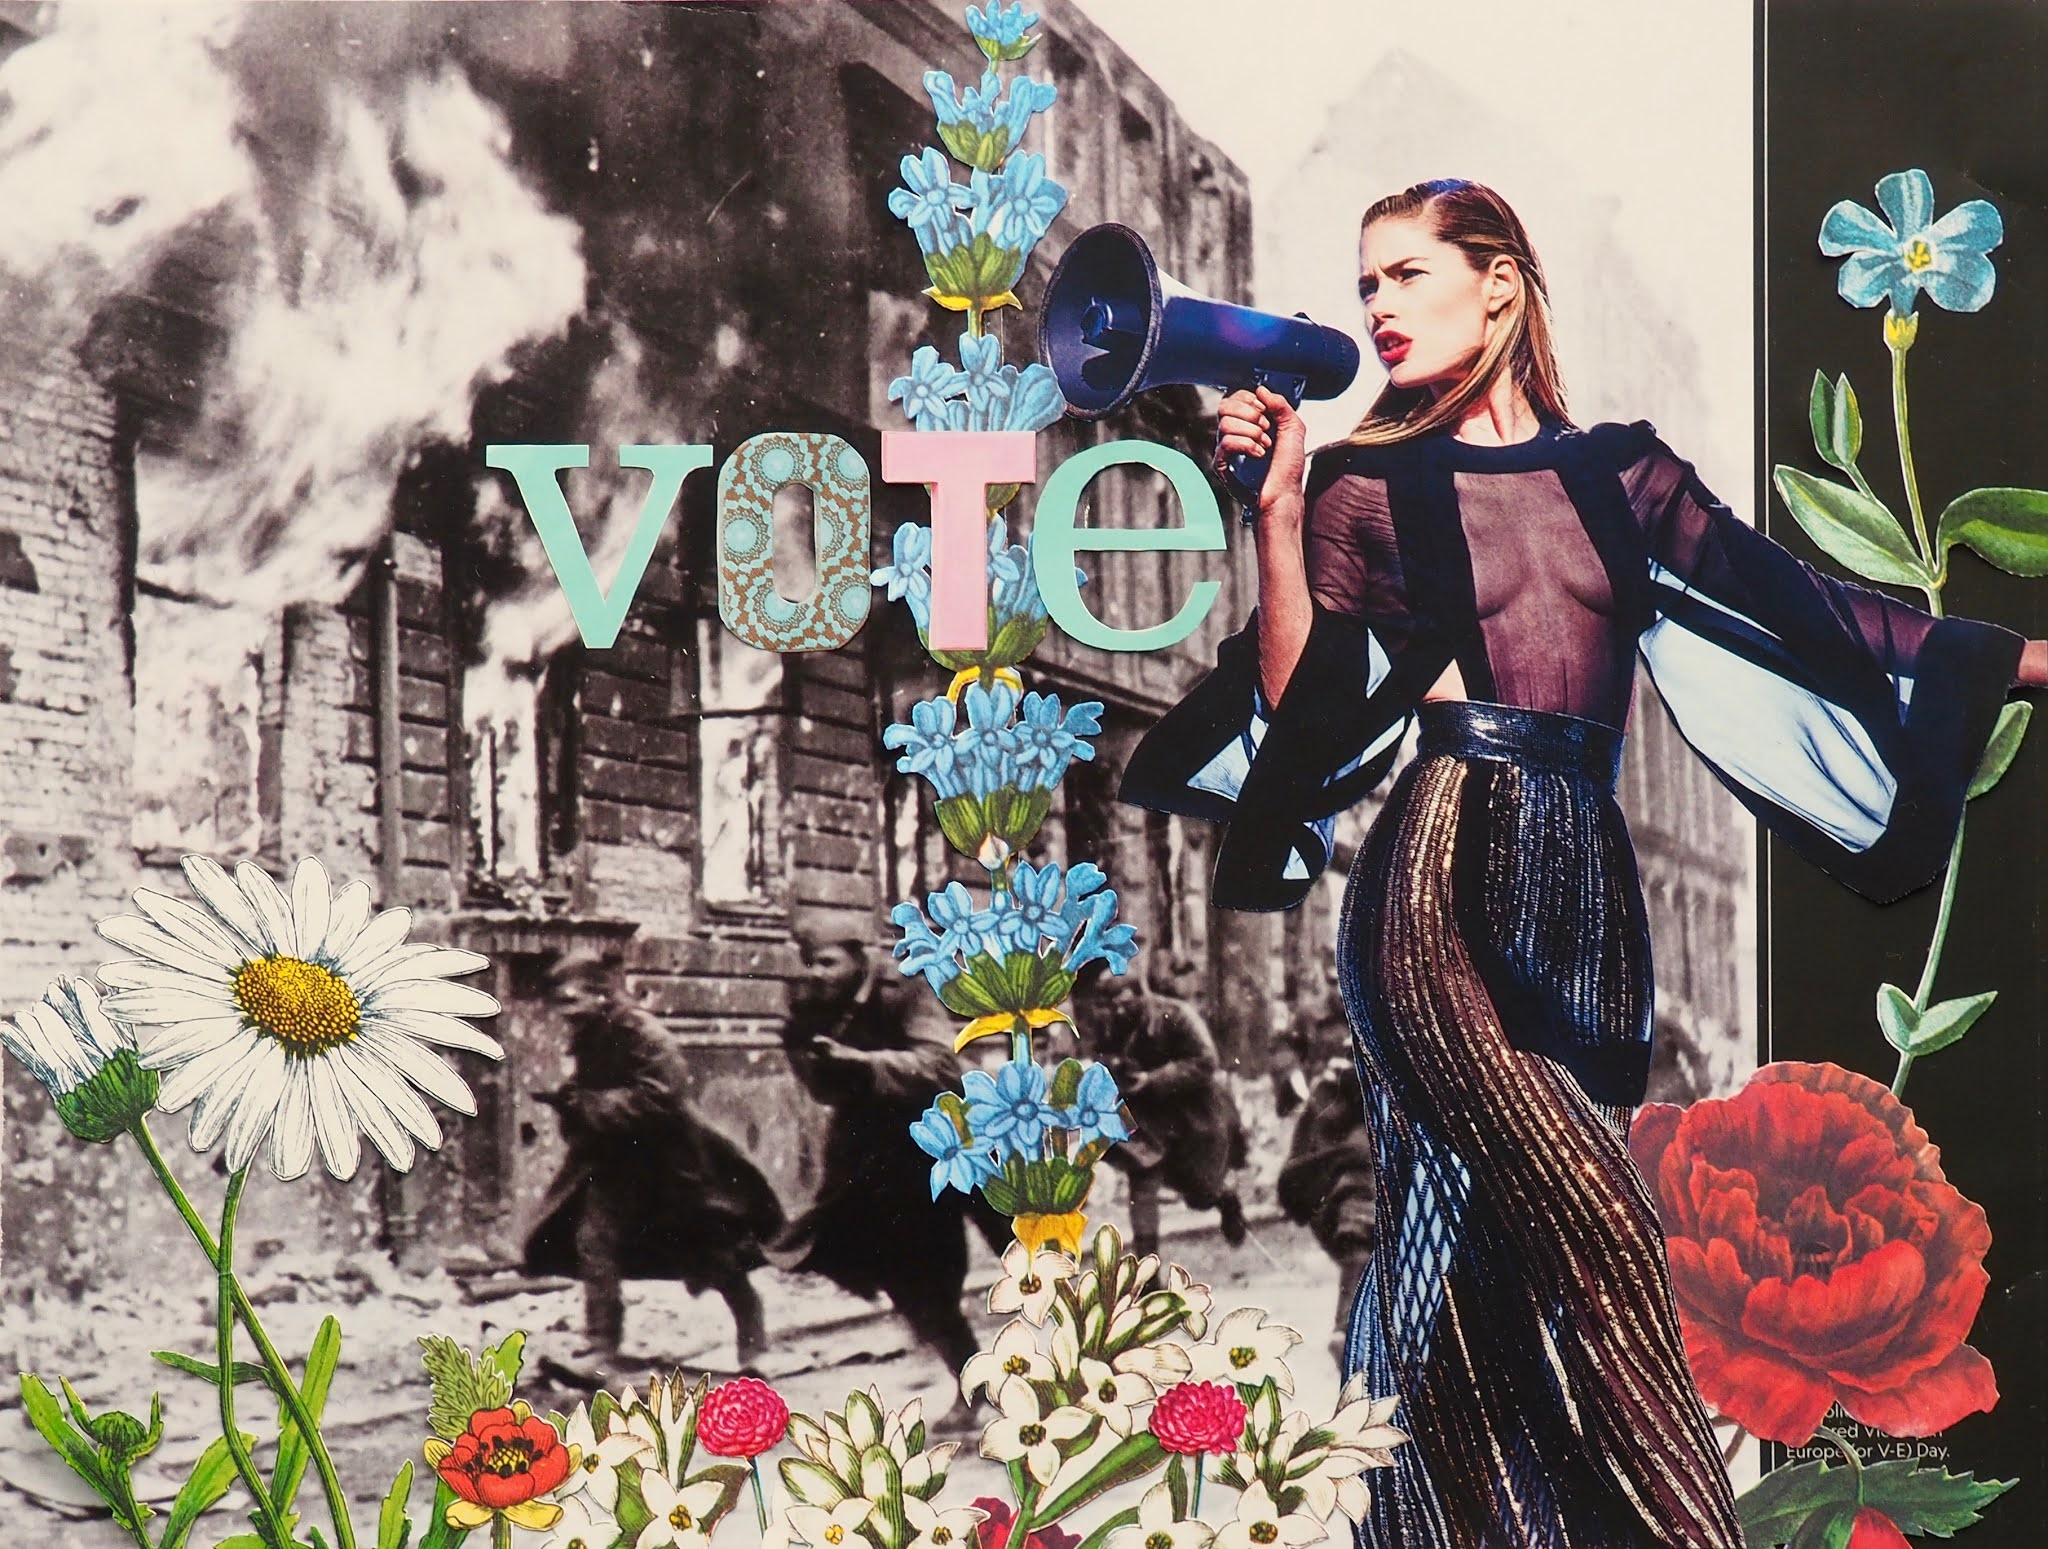 election day 2020, united states general election 2020, US Presidential Election 2020, Vote 2020, election collage 2020, vote collage 2020, cut and paste collage, hand cut collage, color and black and white collage, cut and paste collage, women in collage,